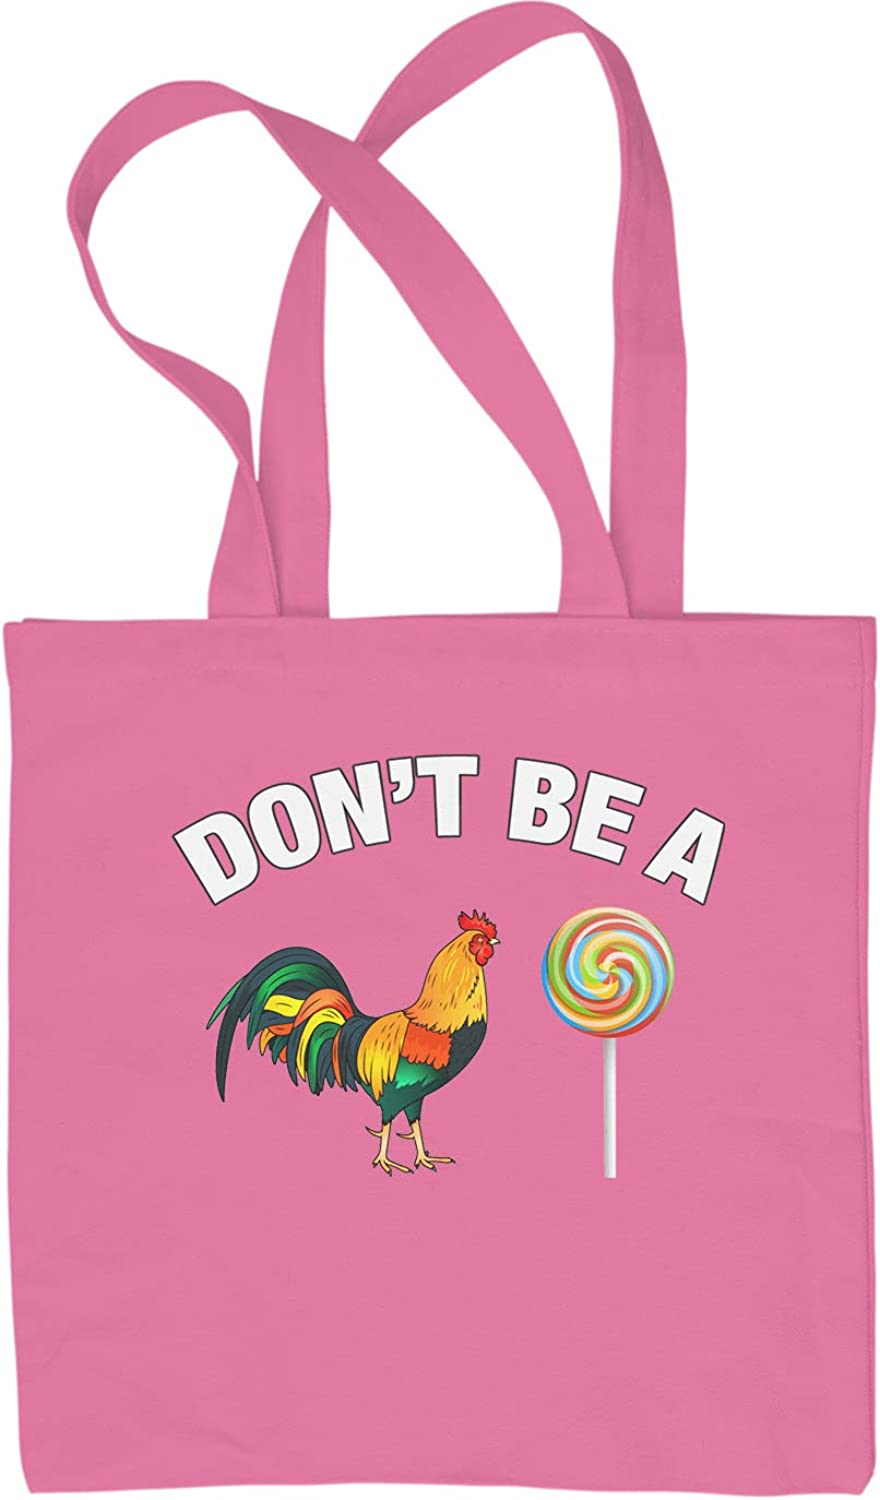 Expression Tees Dont Be A C-ck Sucker Shopping Tote Bag